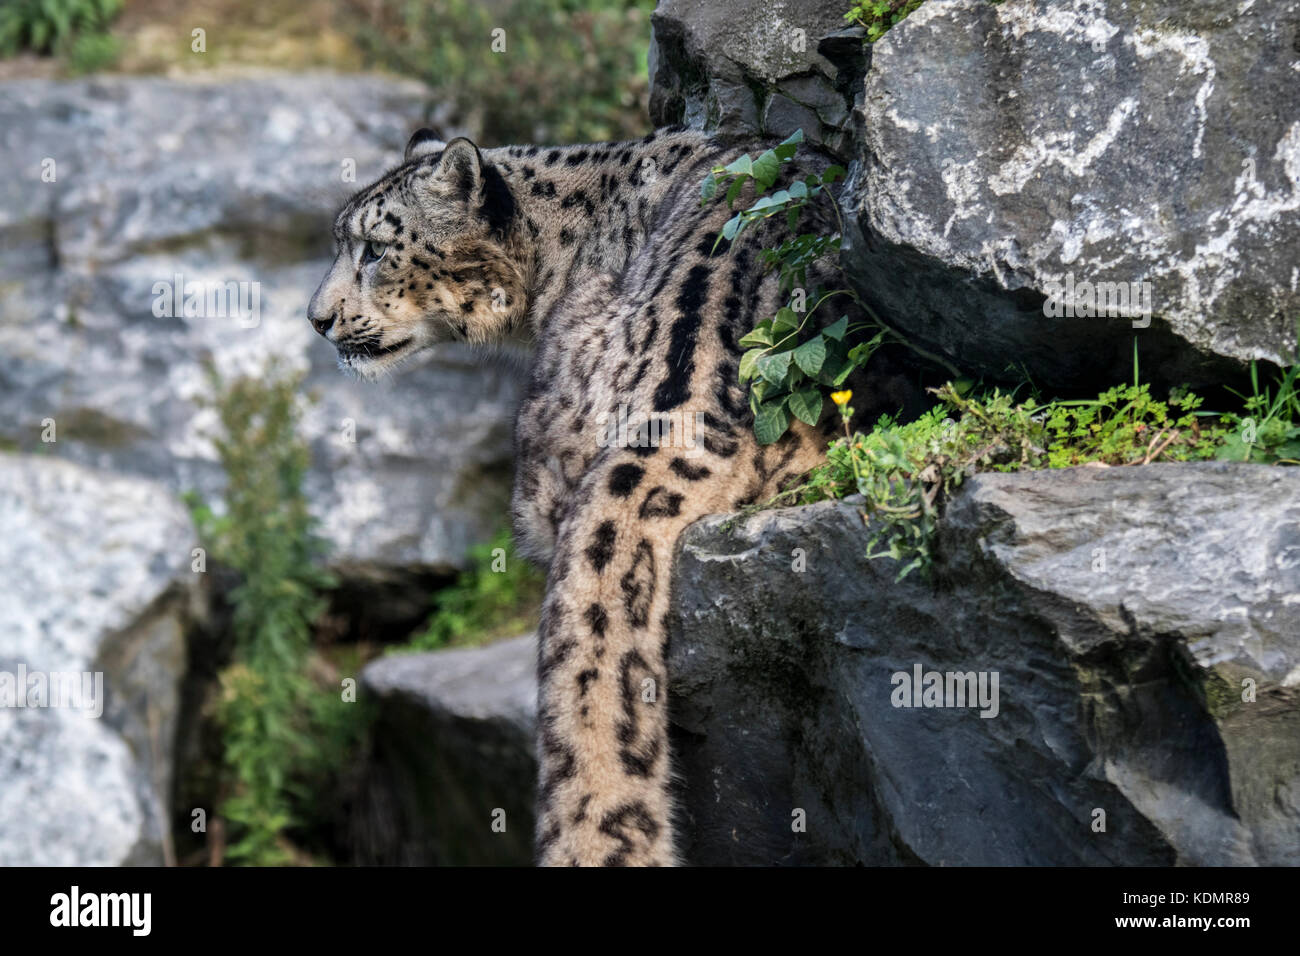 Snow leopard / ounce (Panthera uncia / Uncia uncia) stalking prey in rock face, native to the mountain ranges of - Stock Image